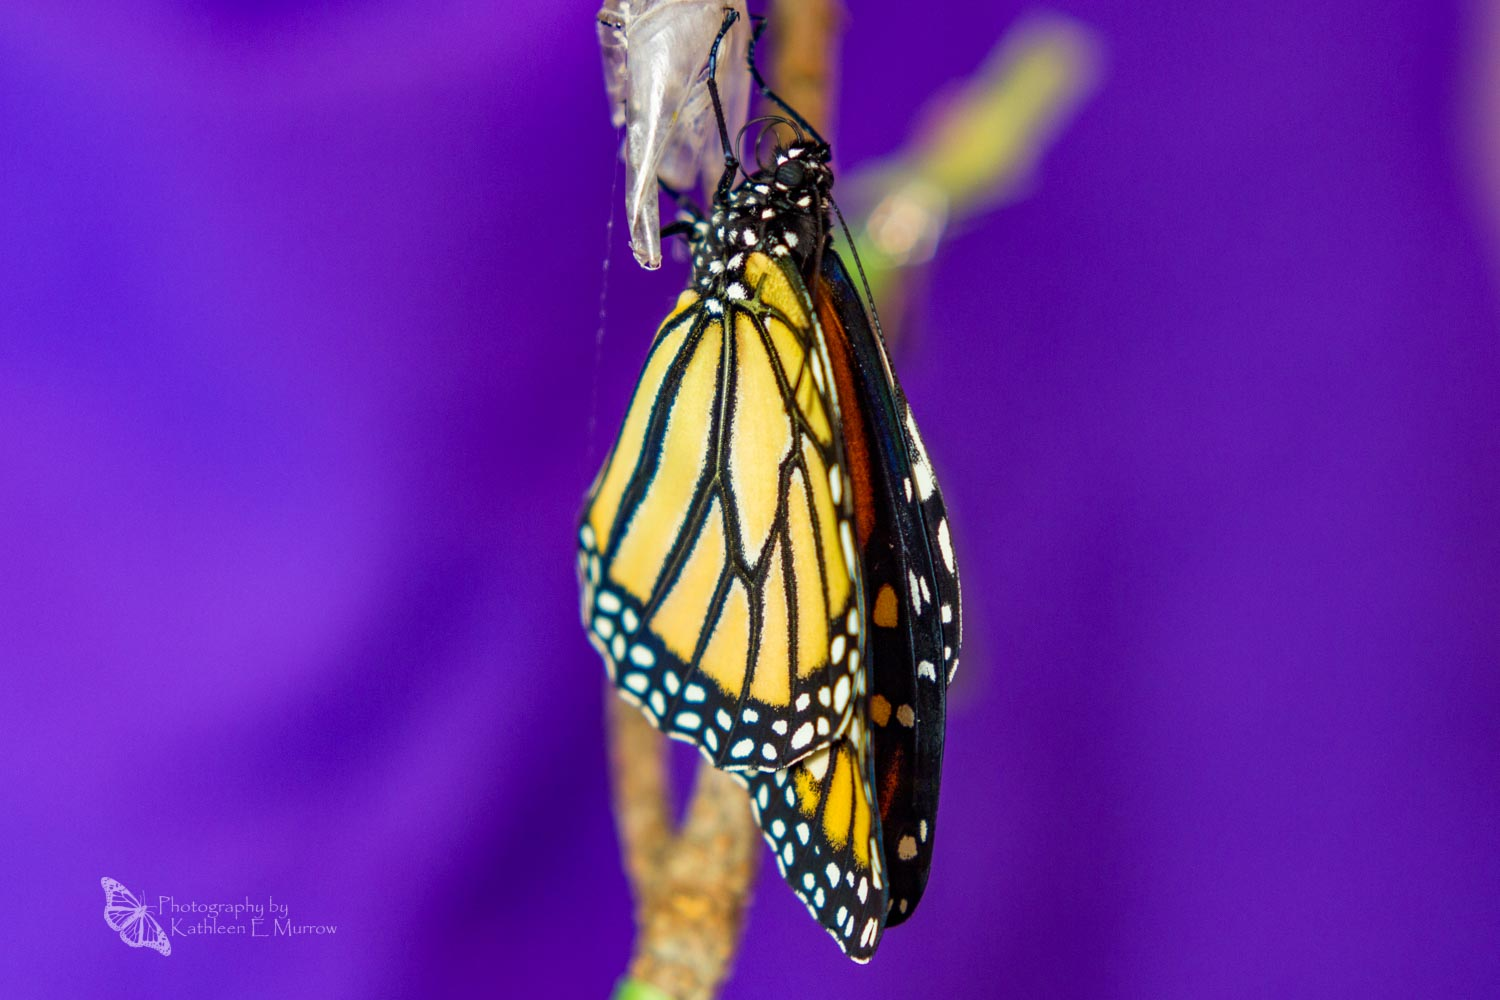 A monarch butterfly that has just eclosed (emerged from its chrysalis) drying its wings